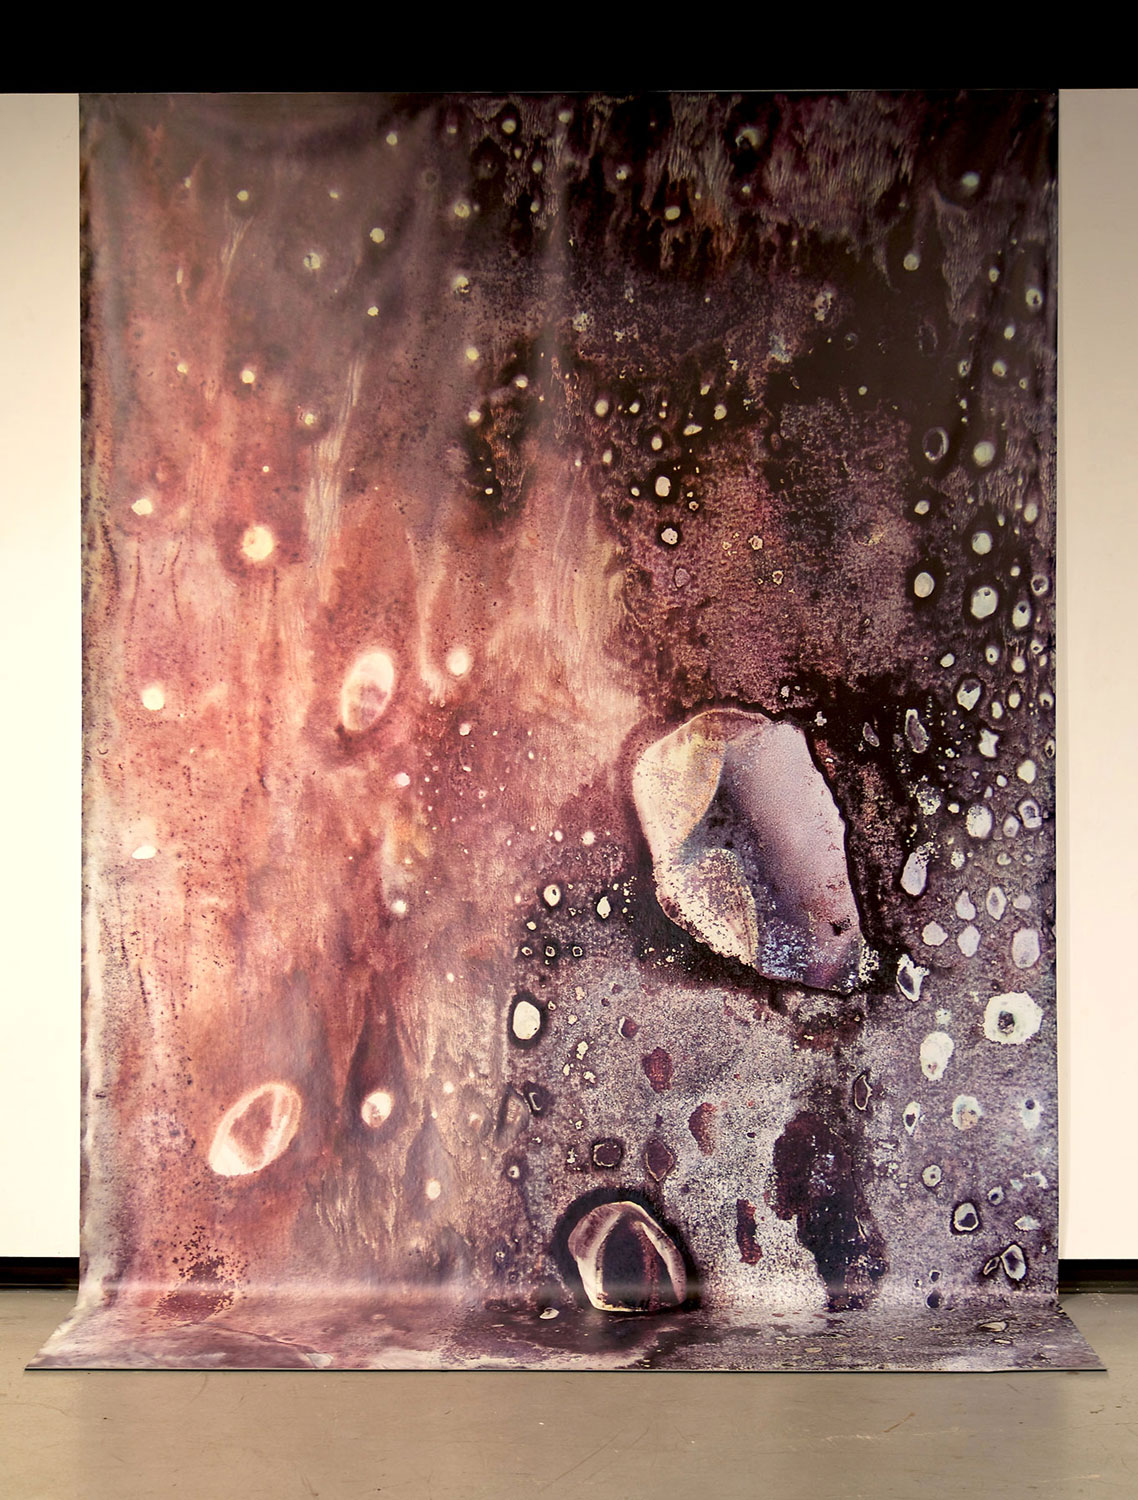 Displace (Panel 03), 2013, 12 ft x 6 ft, mixed media, ink, archival print on vinyl